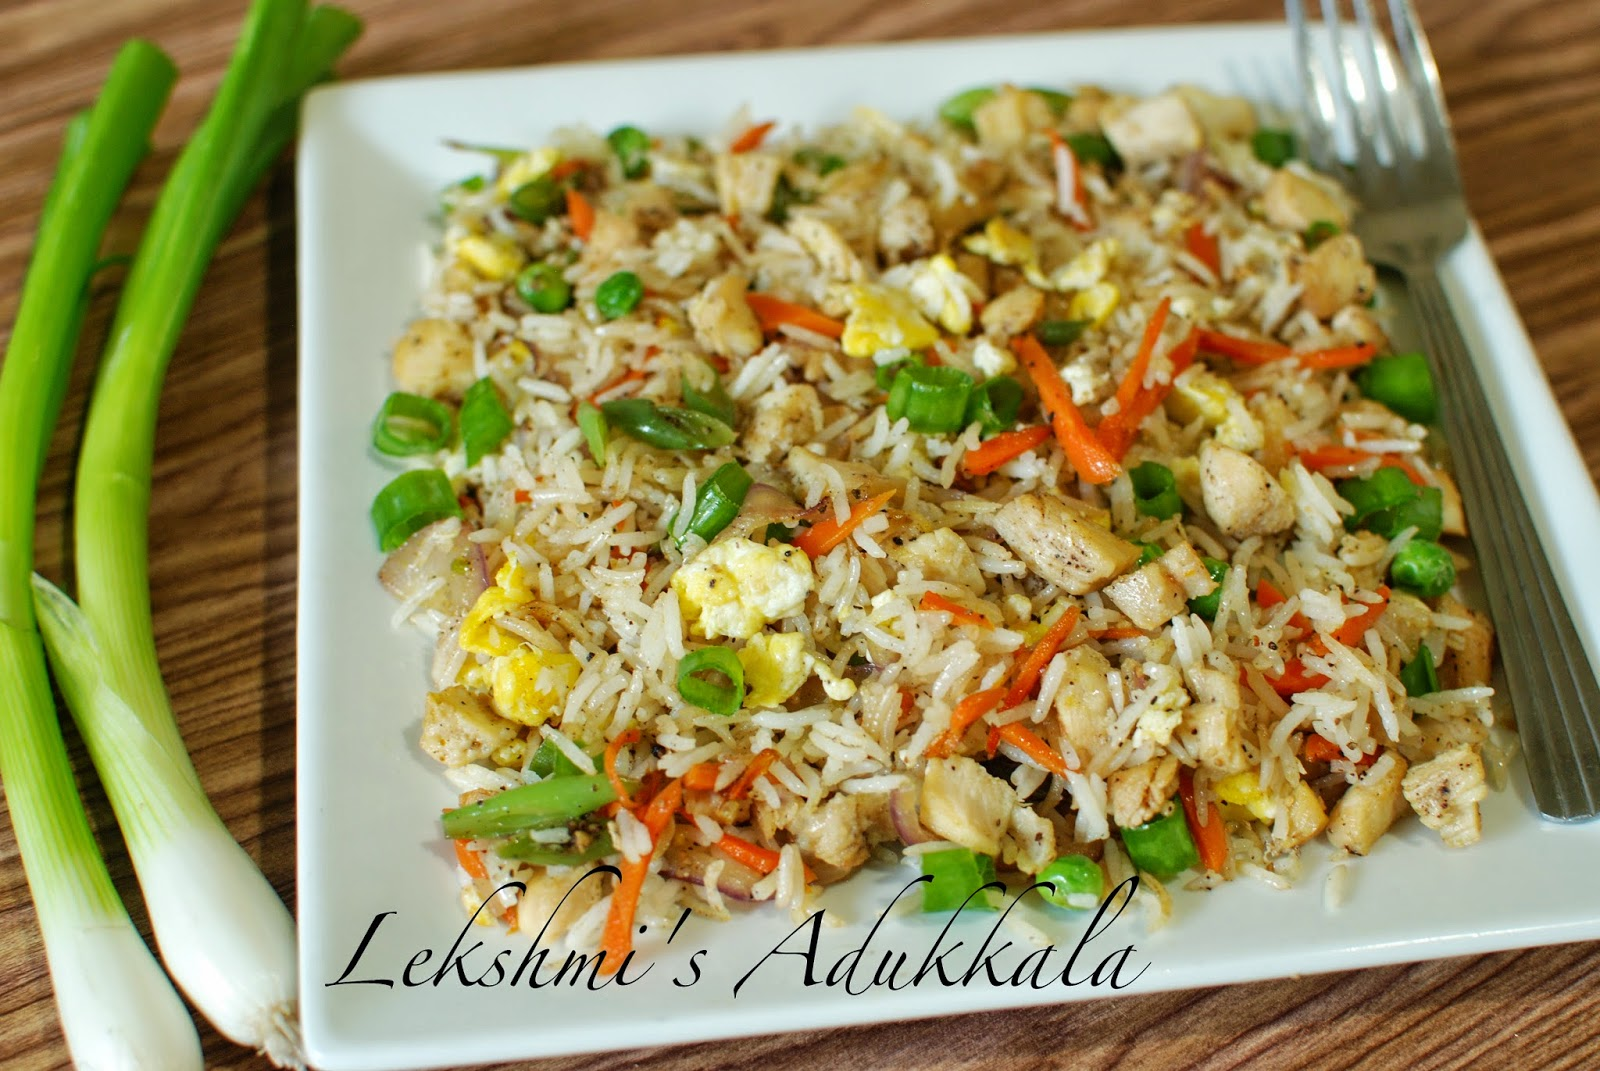 Lekshmis adukkala chicken fried rice chicken fried rice ccuart Image collections